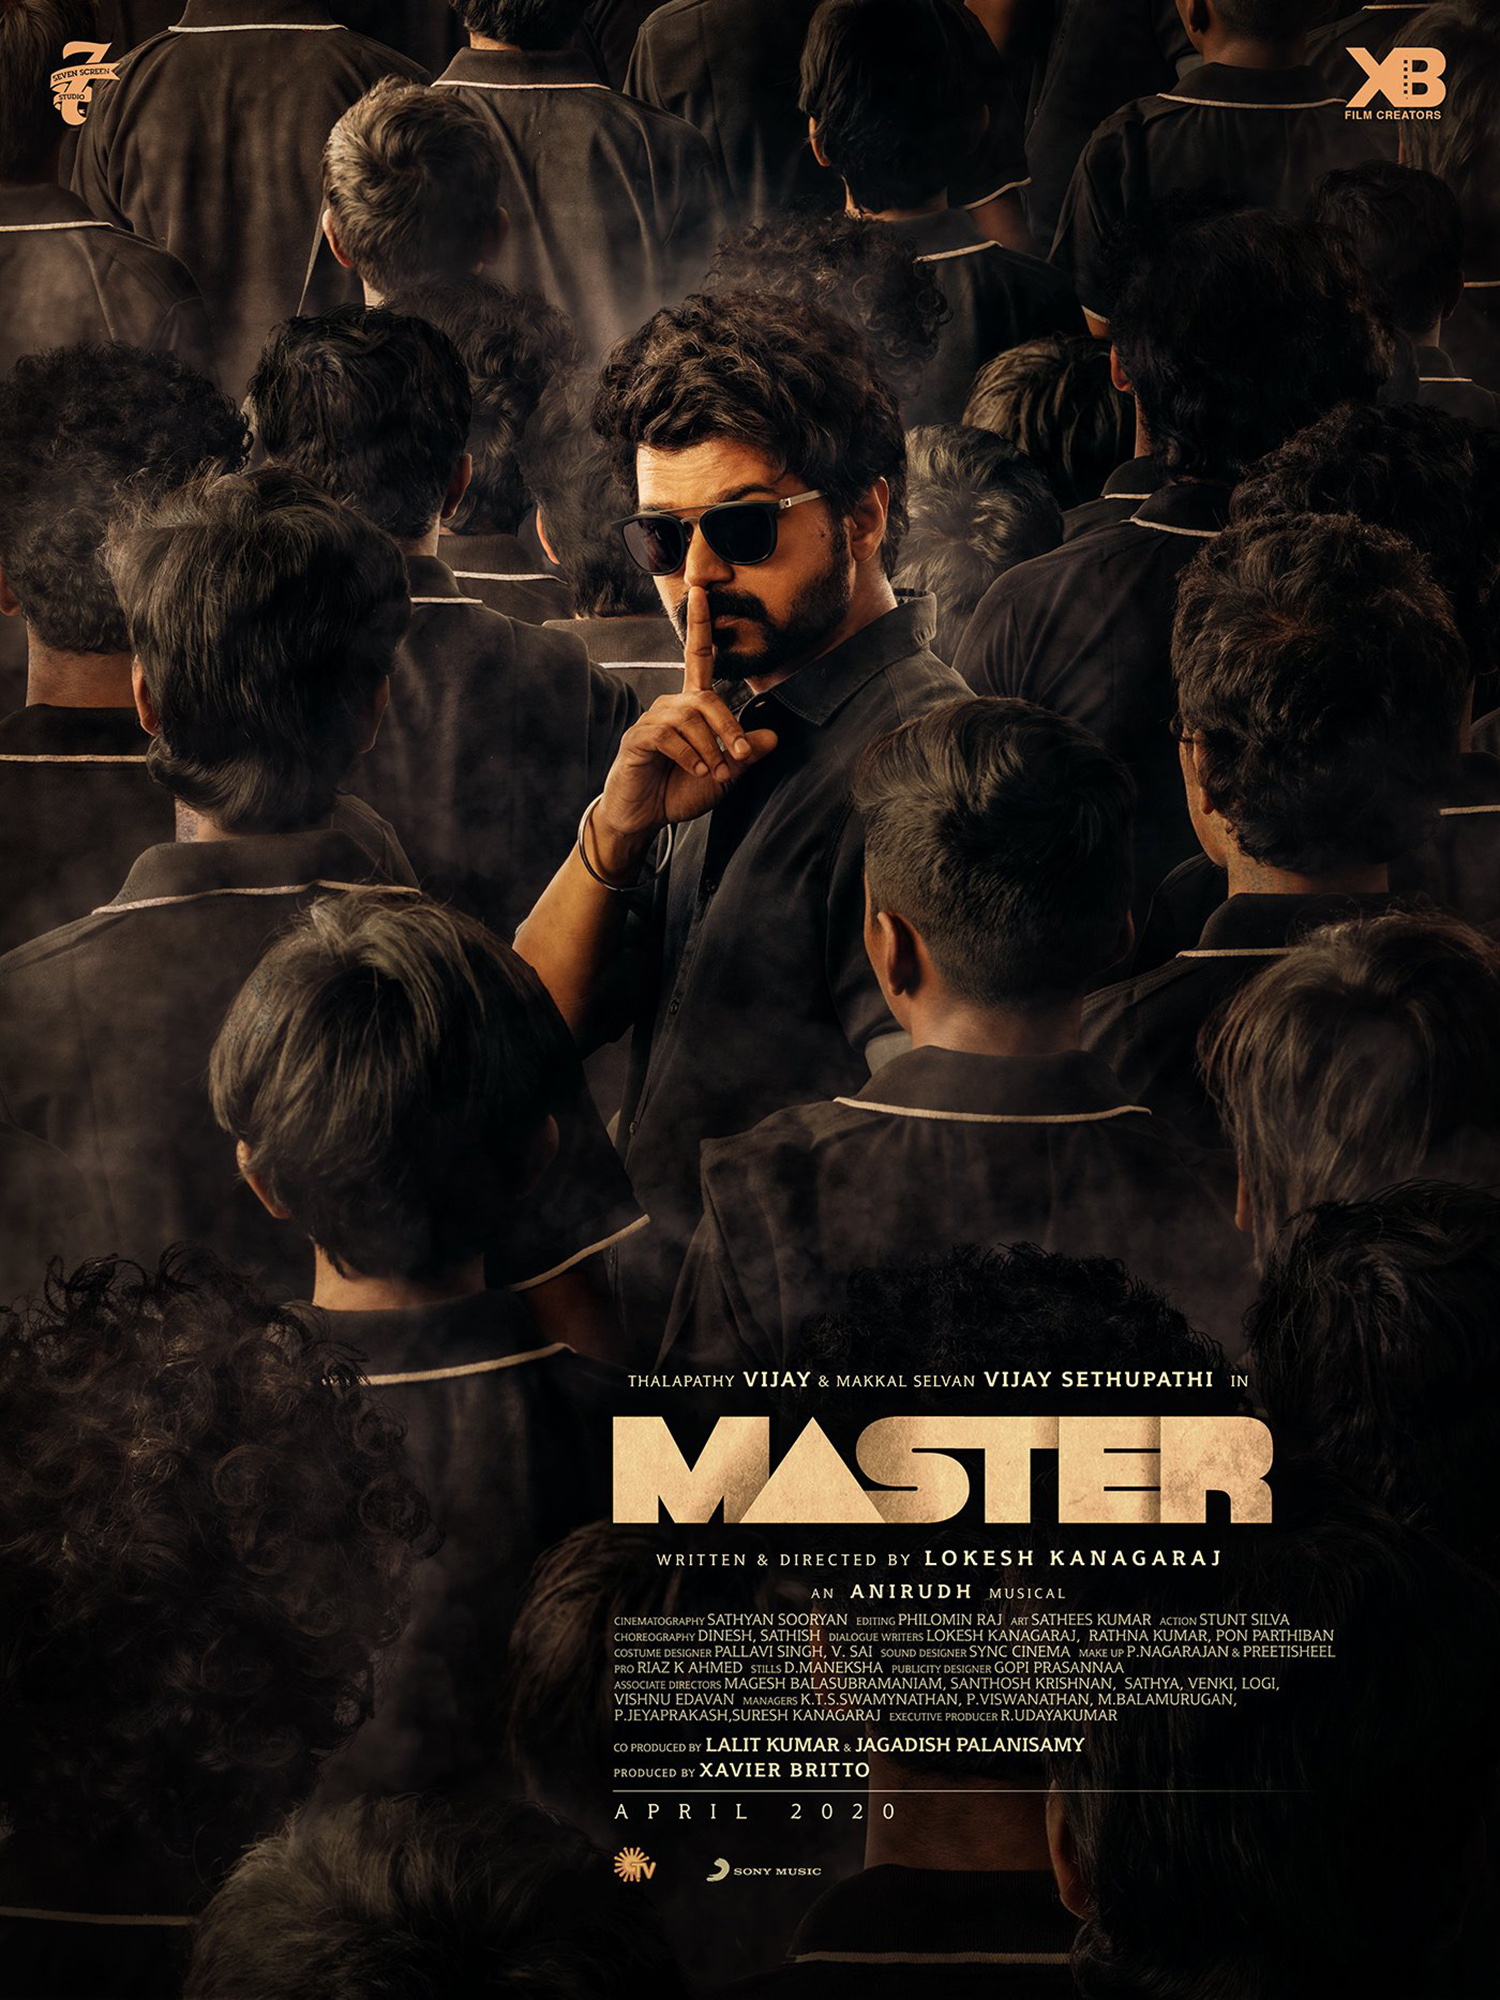 Just in: Vijay's Master second look poster is here!